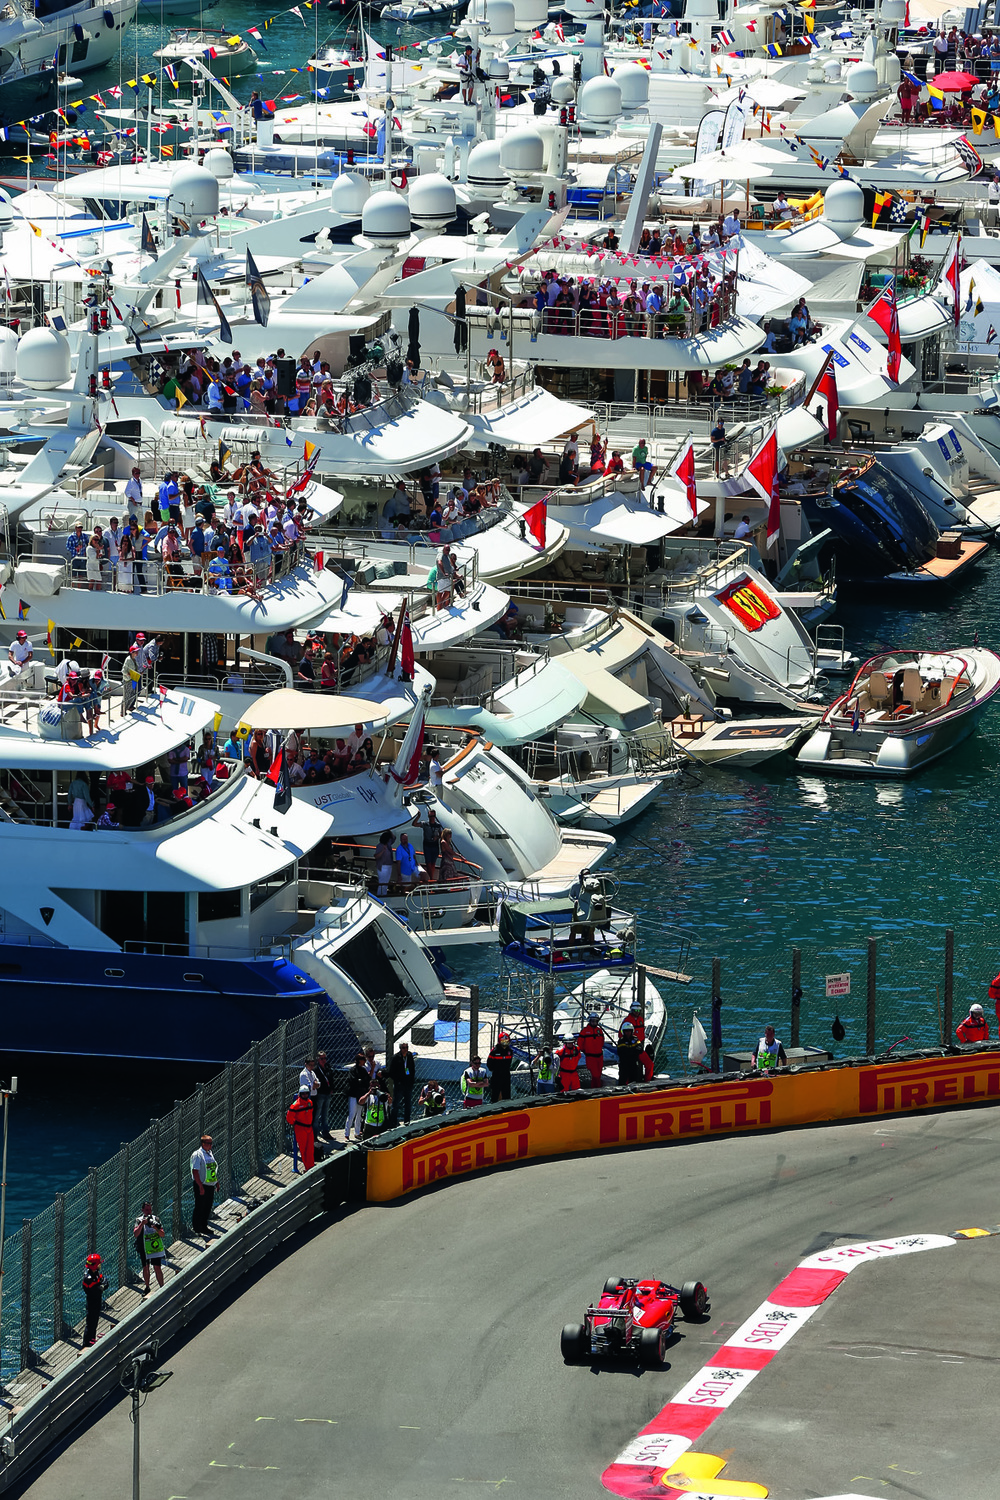 © The Stylish Life - Yachting, published by teNeues, www.teneues.com. FIA Formula One World Championship 2014, Grand Prix of Monaco, Photo © Hoch Zwei/Corbis.